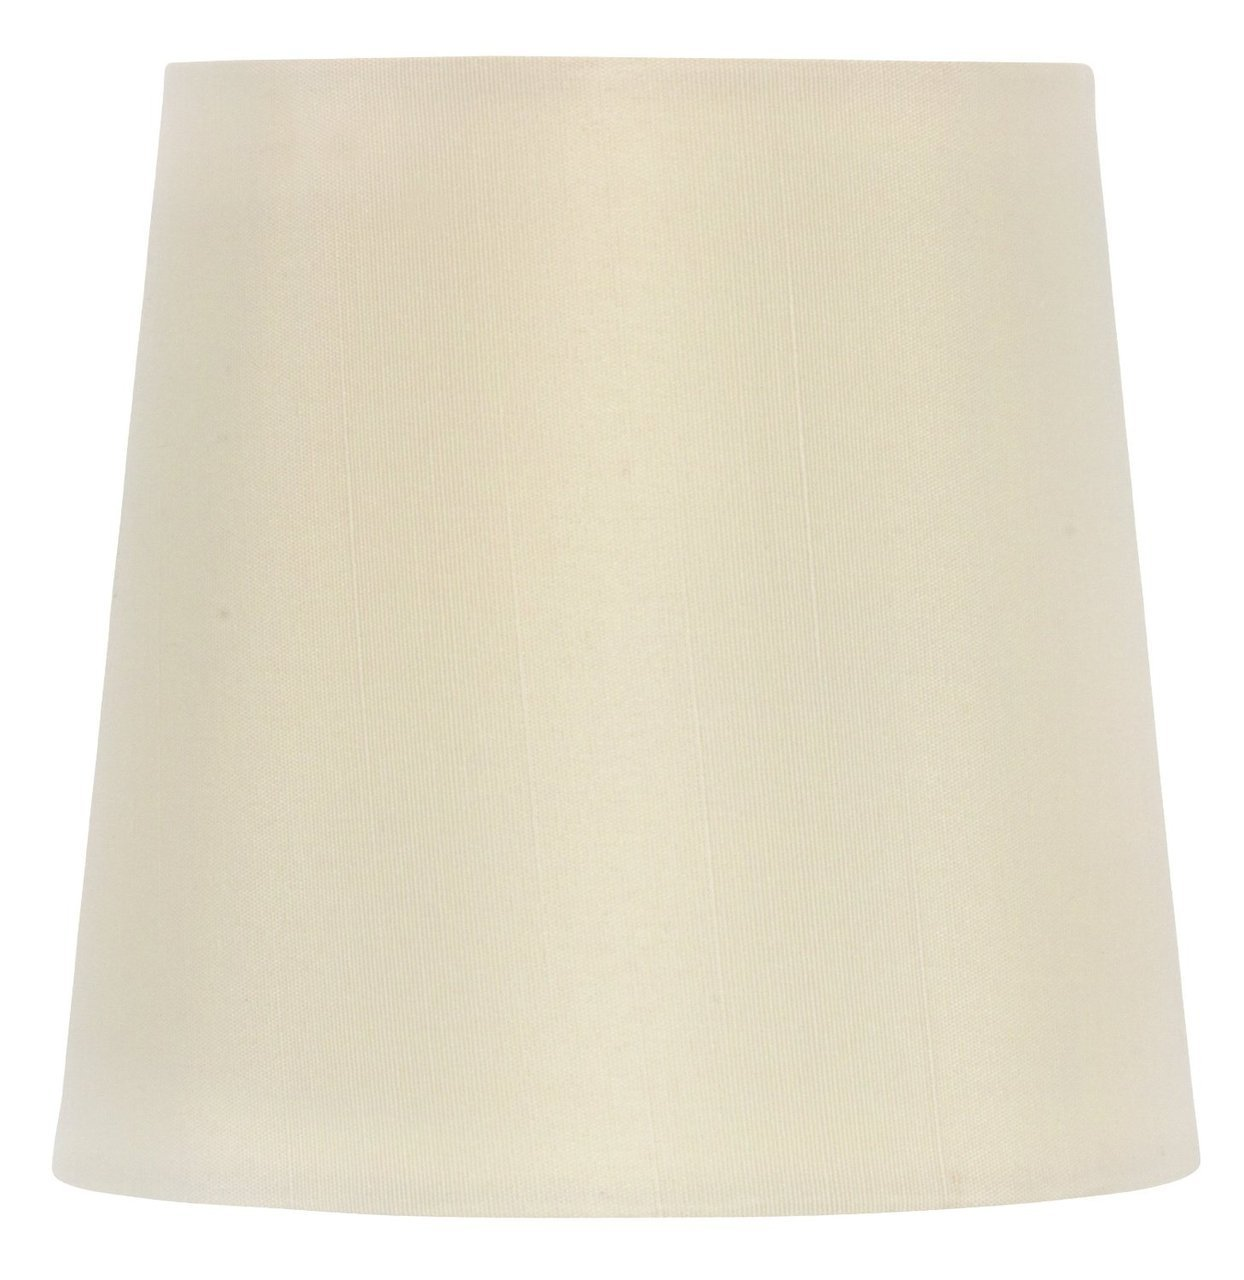 Upgradelights 5 Inch Retro Drum Clip On Chandelier Lamp Shade in Eggshell 4x5x5